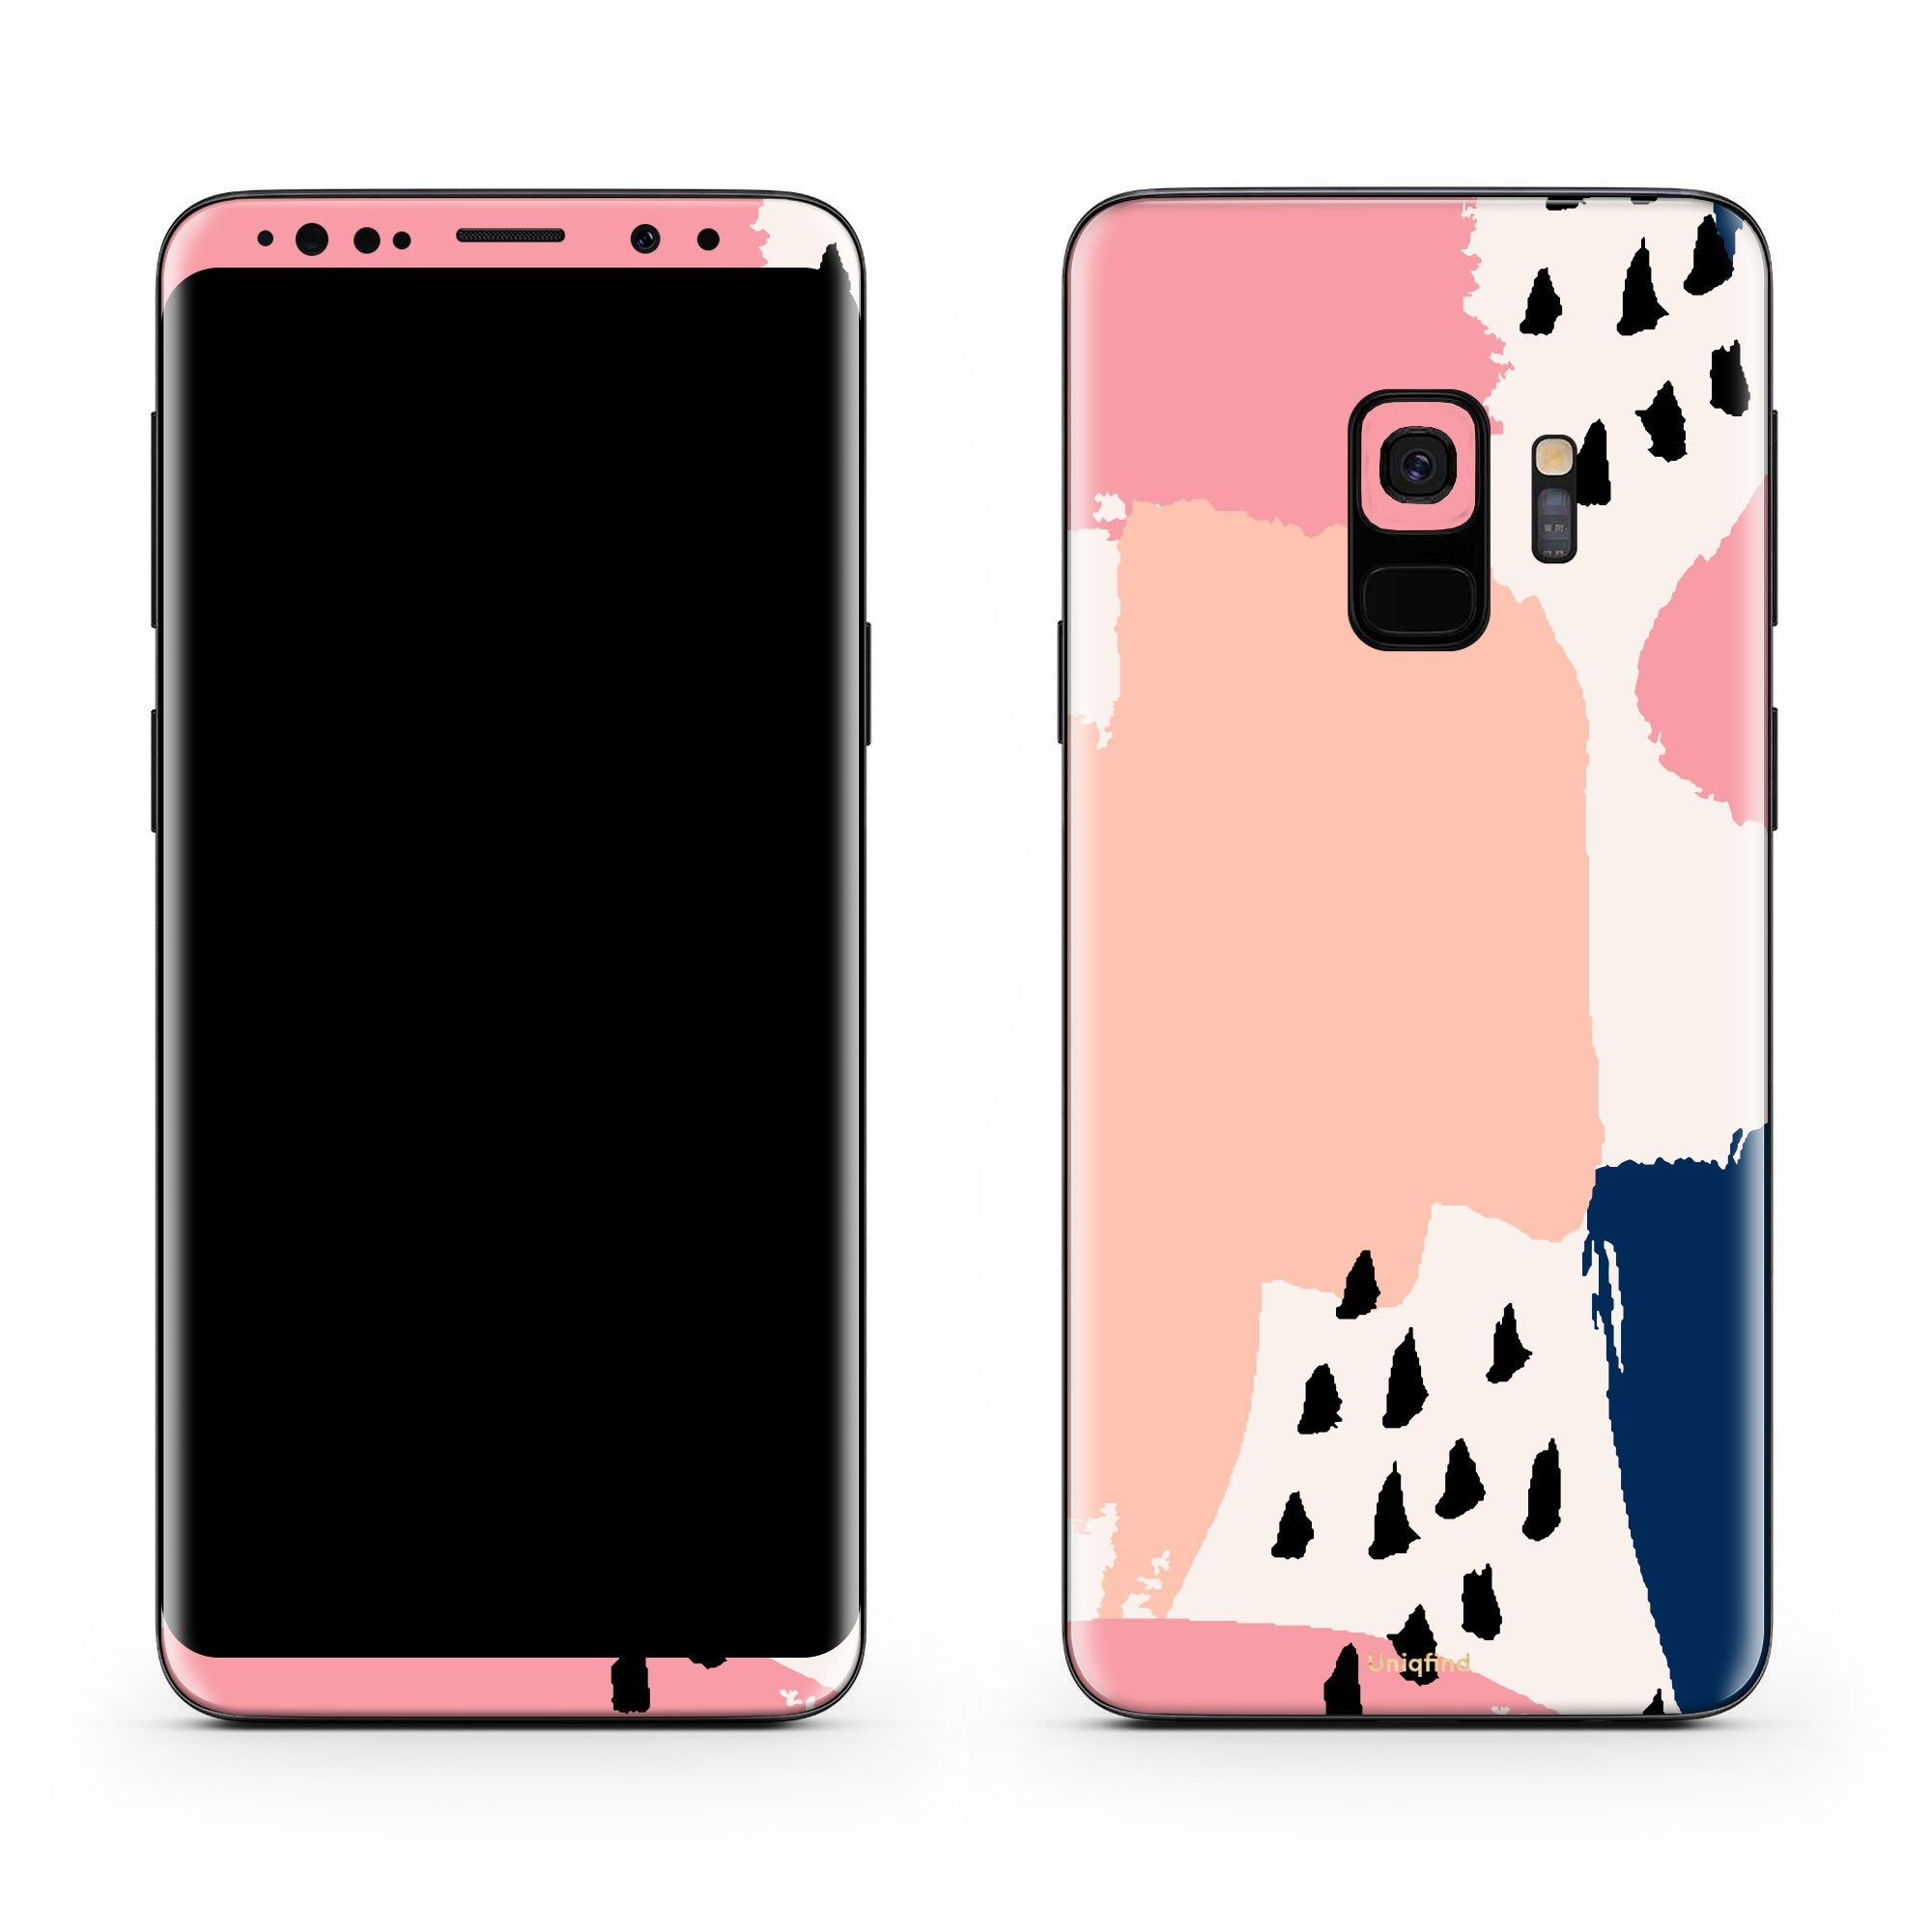 Miami Vice Galaxy S9 Skin + Case